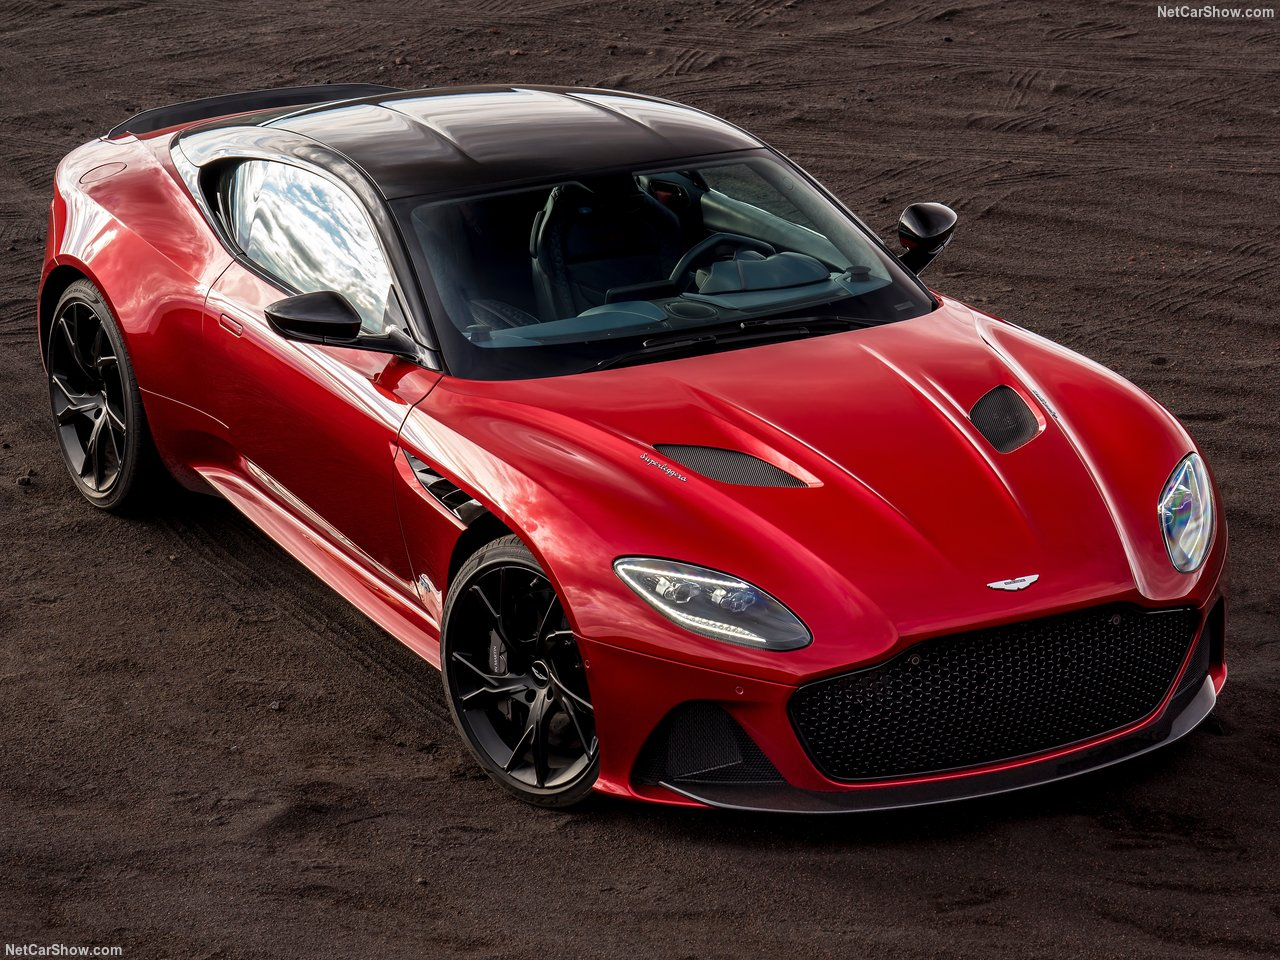 Aston_Martin-DBS_Superleggera-2019-1280-01